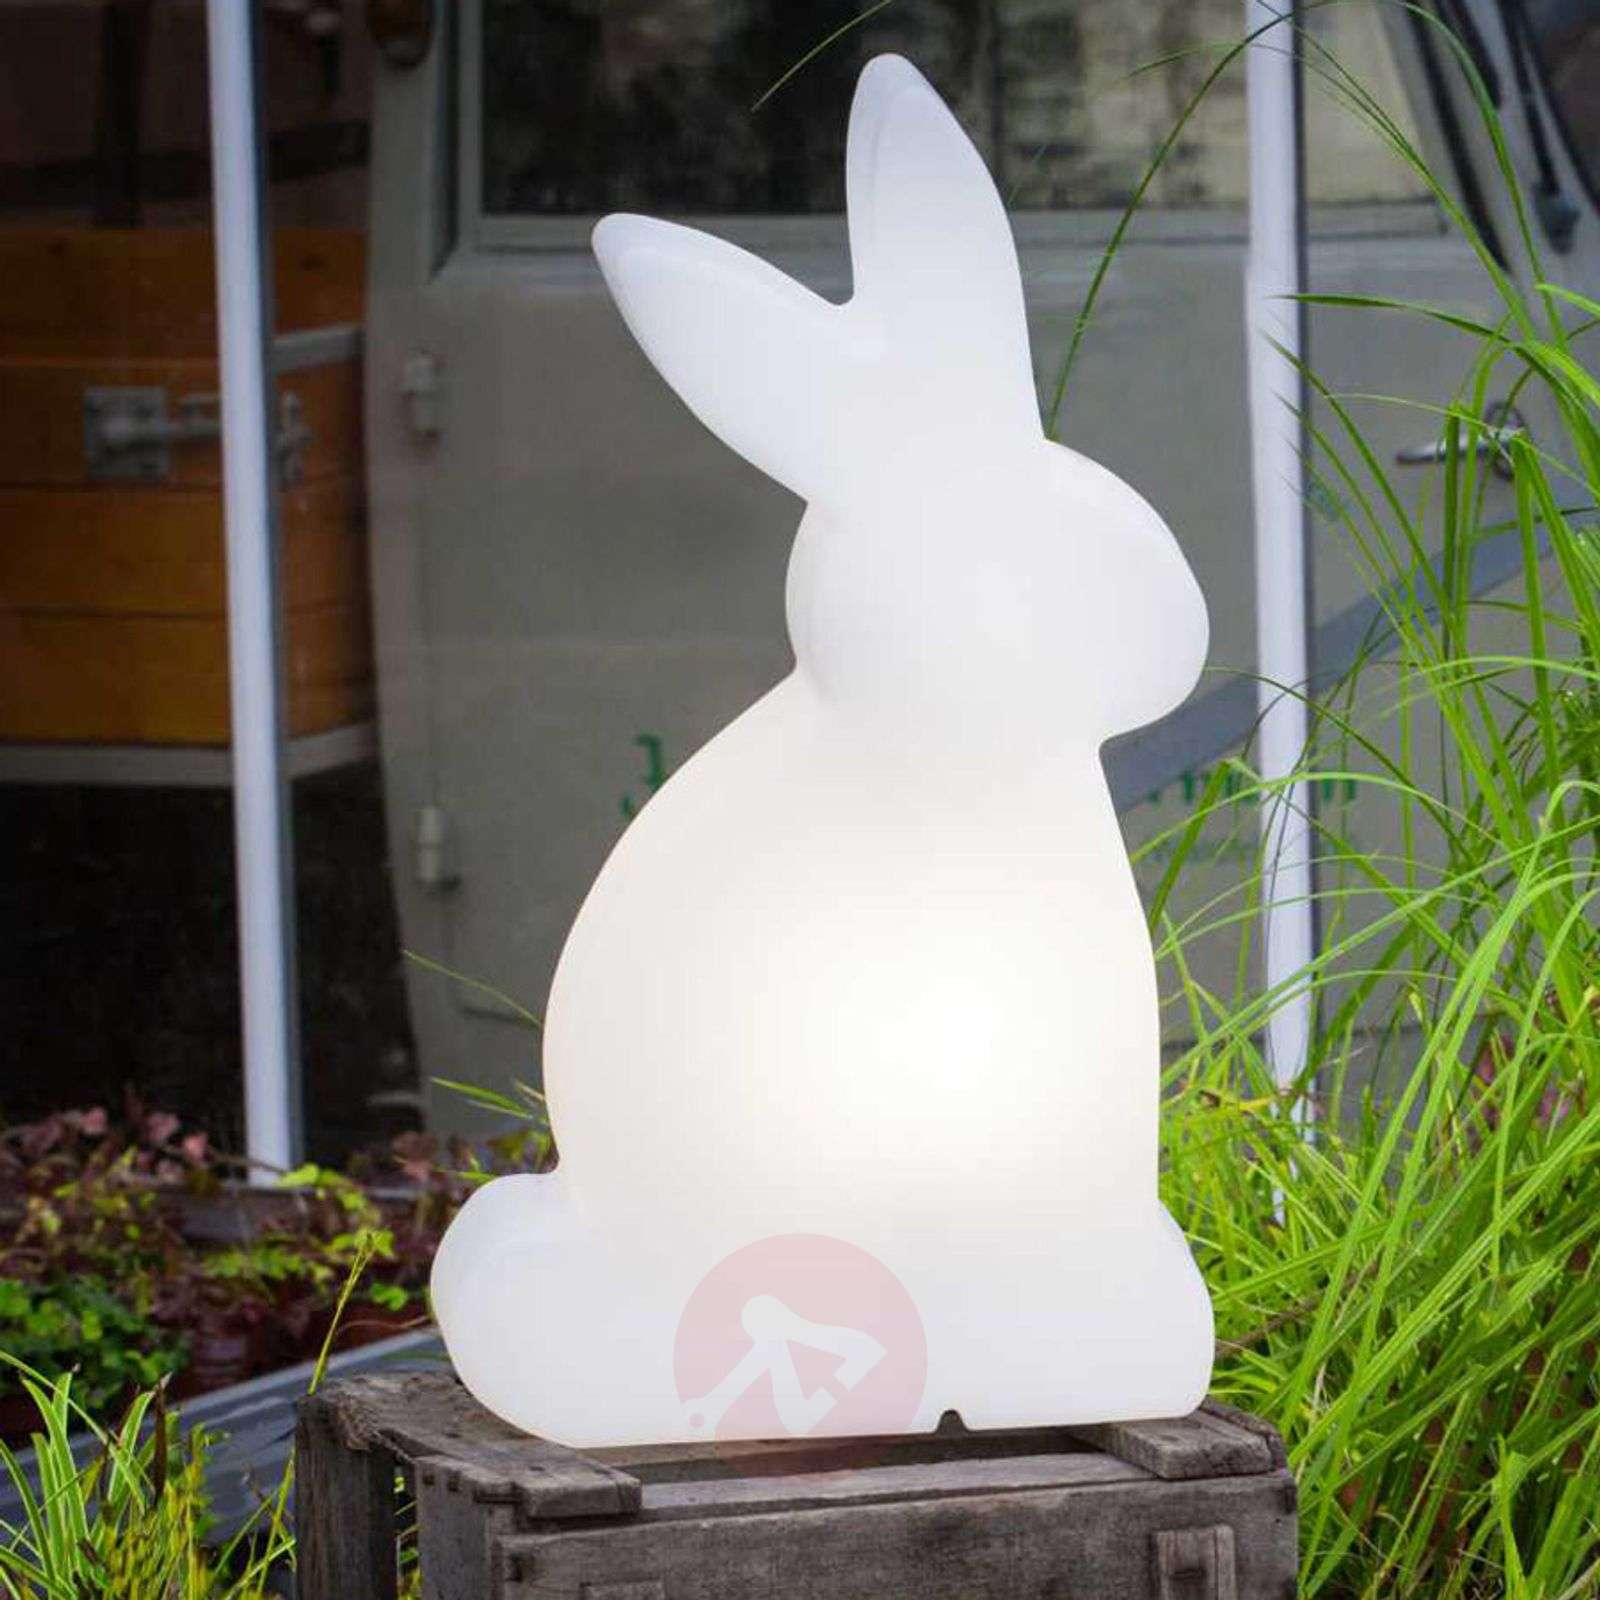 LED-koristevalaisin Shining Rabbit, 50 cm-1004079-02